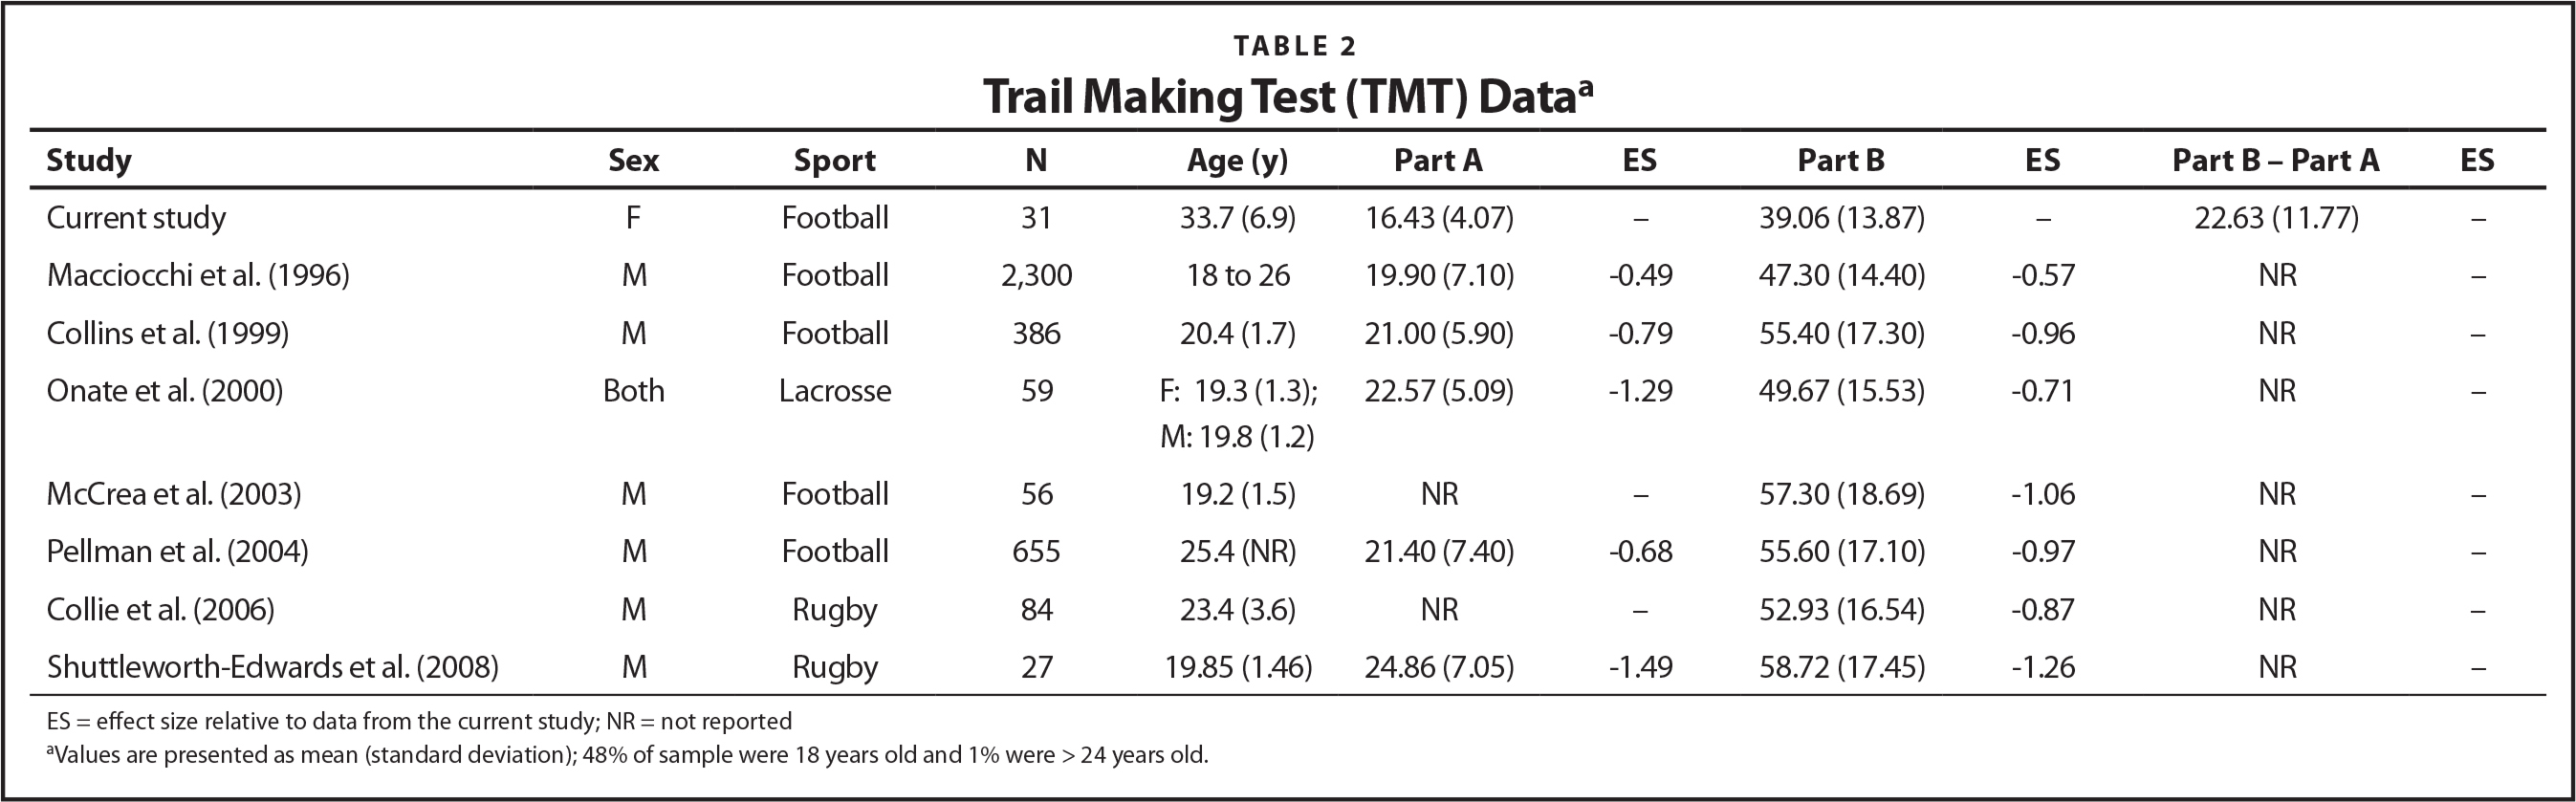 Trail Making Test (TMT) Dataa